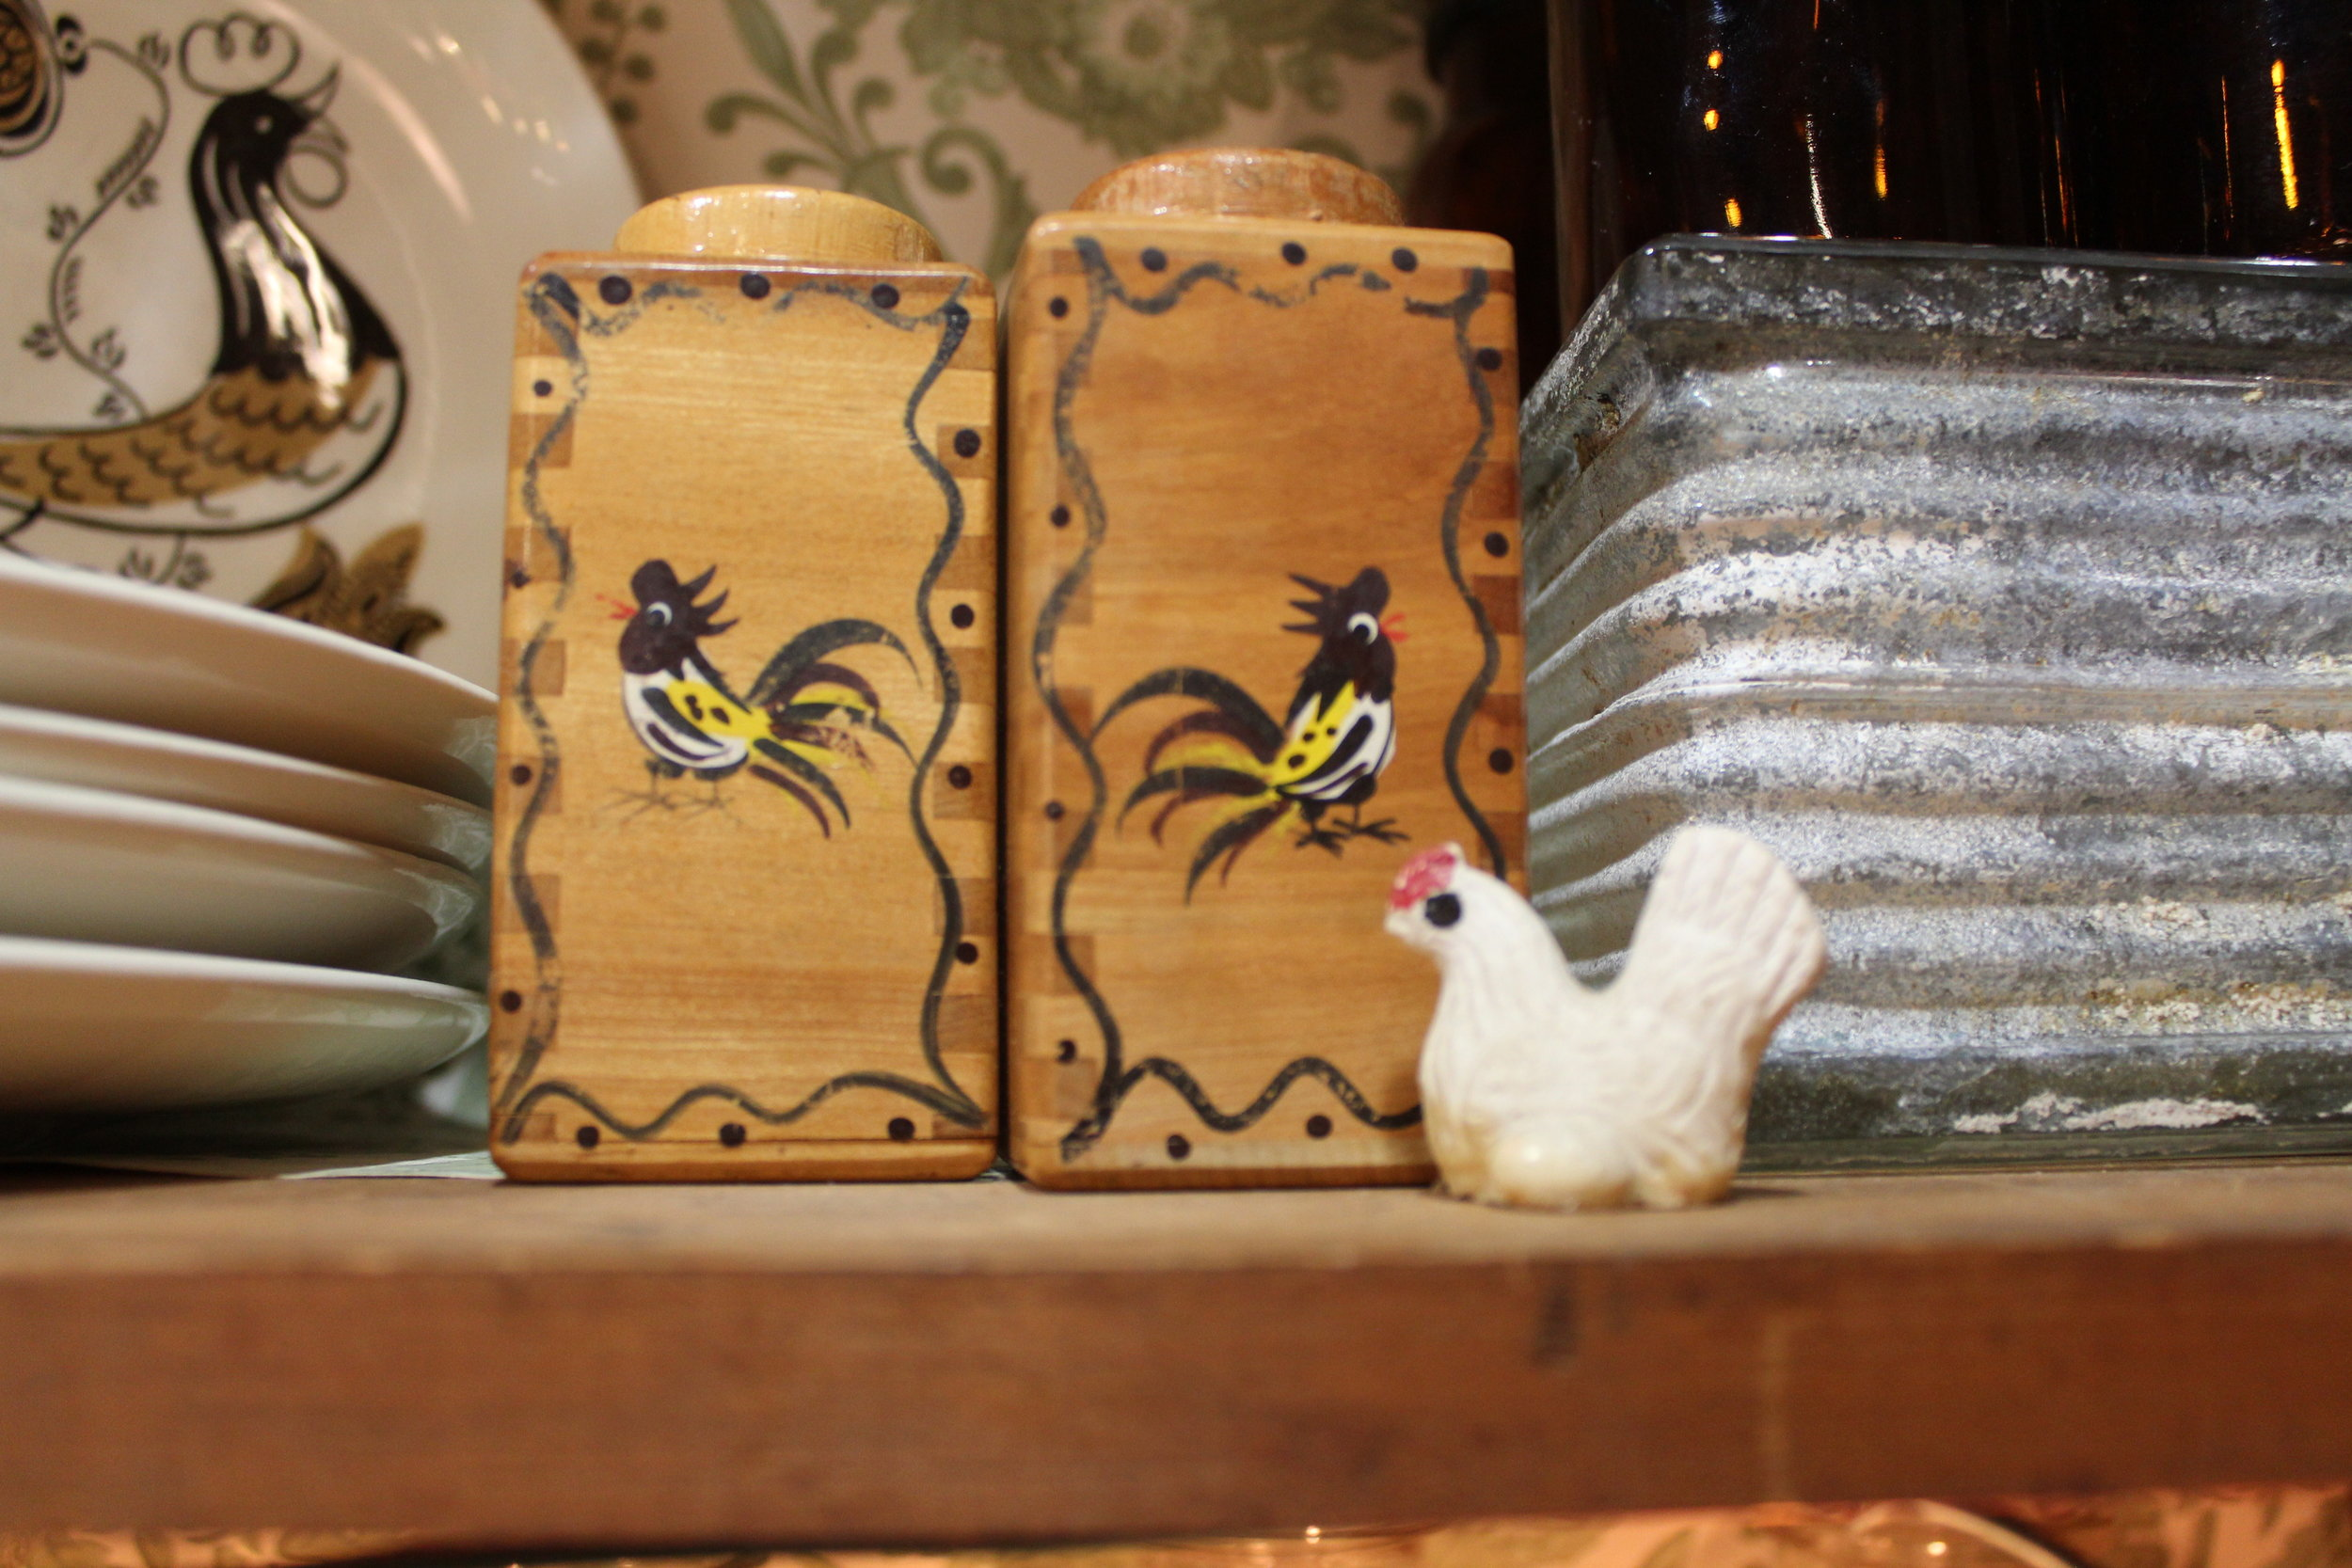 Wooden handpainted rooster salt & pepper shakers